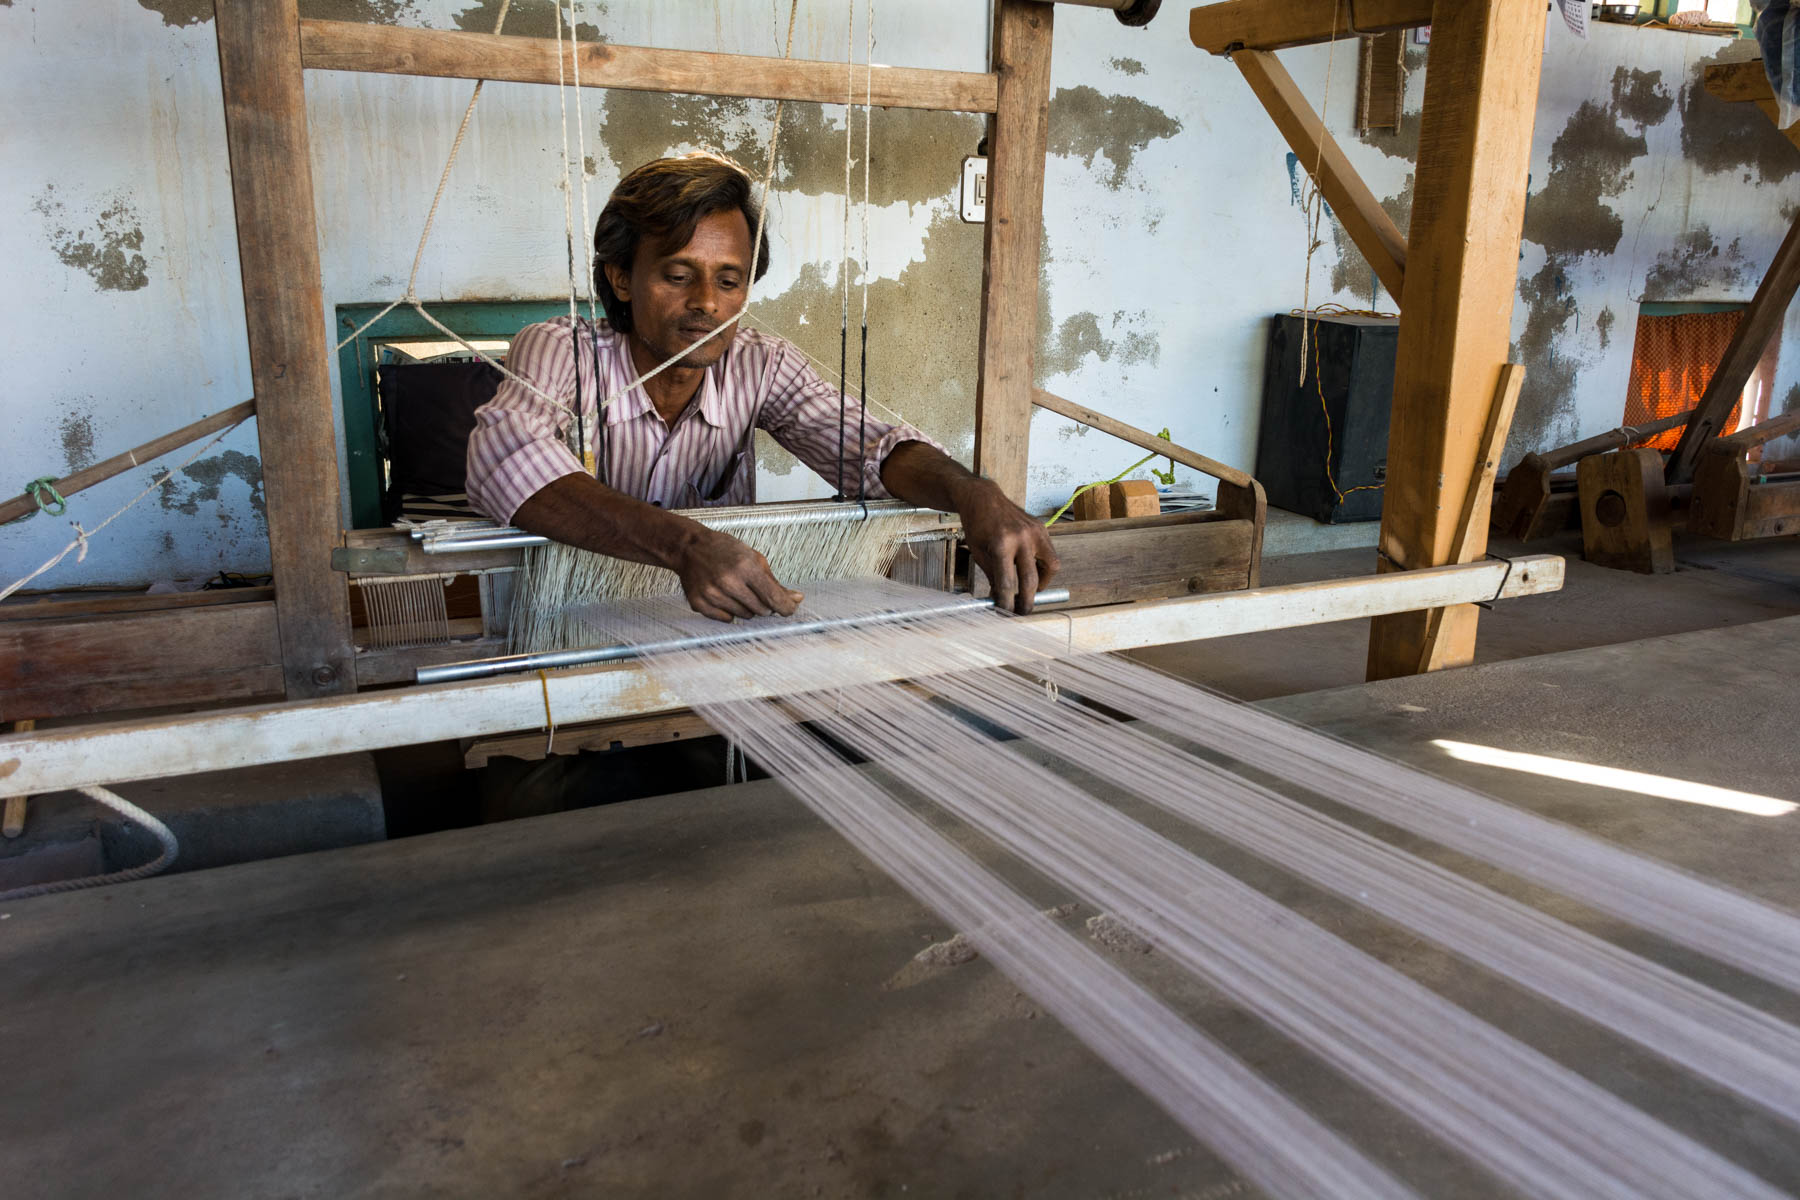 Textiles and crafts of Kutch, Gujarat, India - A local weaver at his loom in Bhujodi - Lost With Purpose